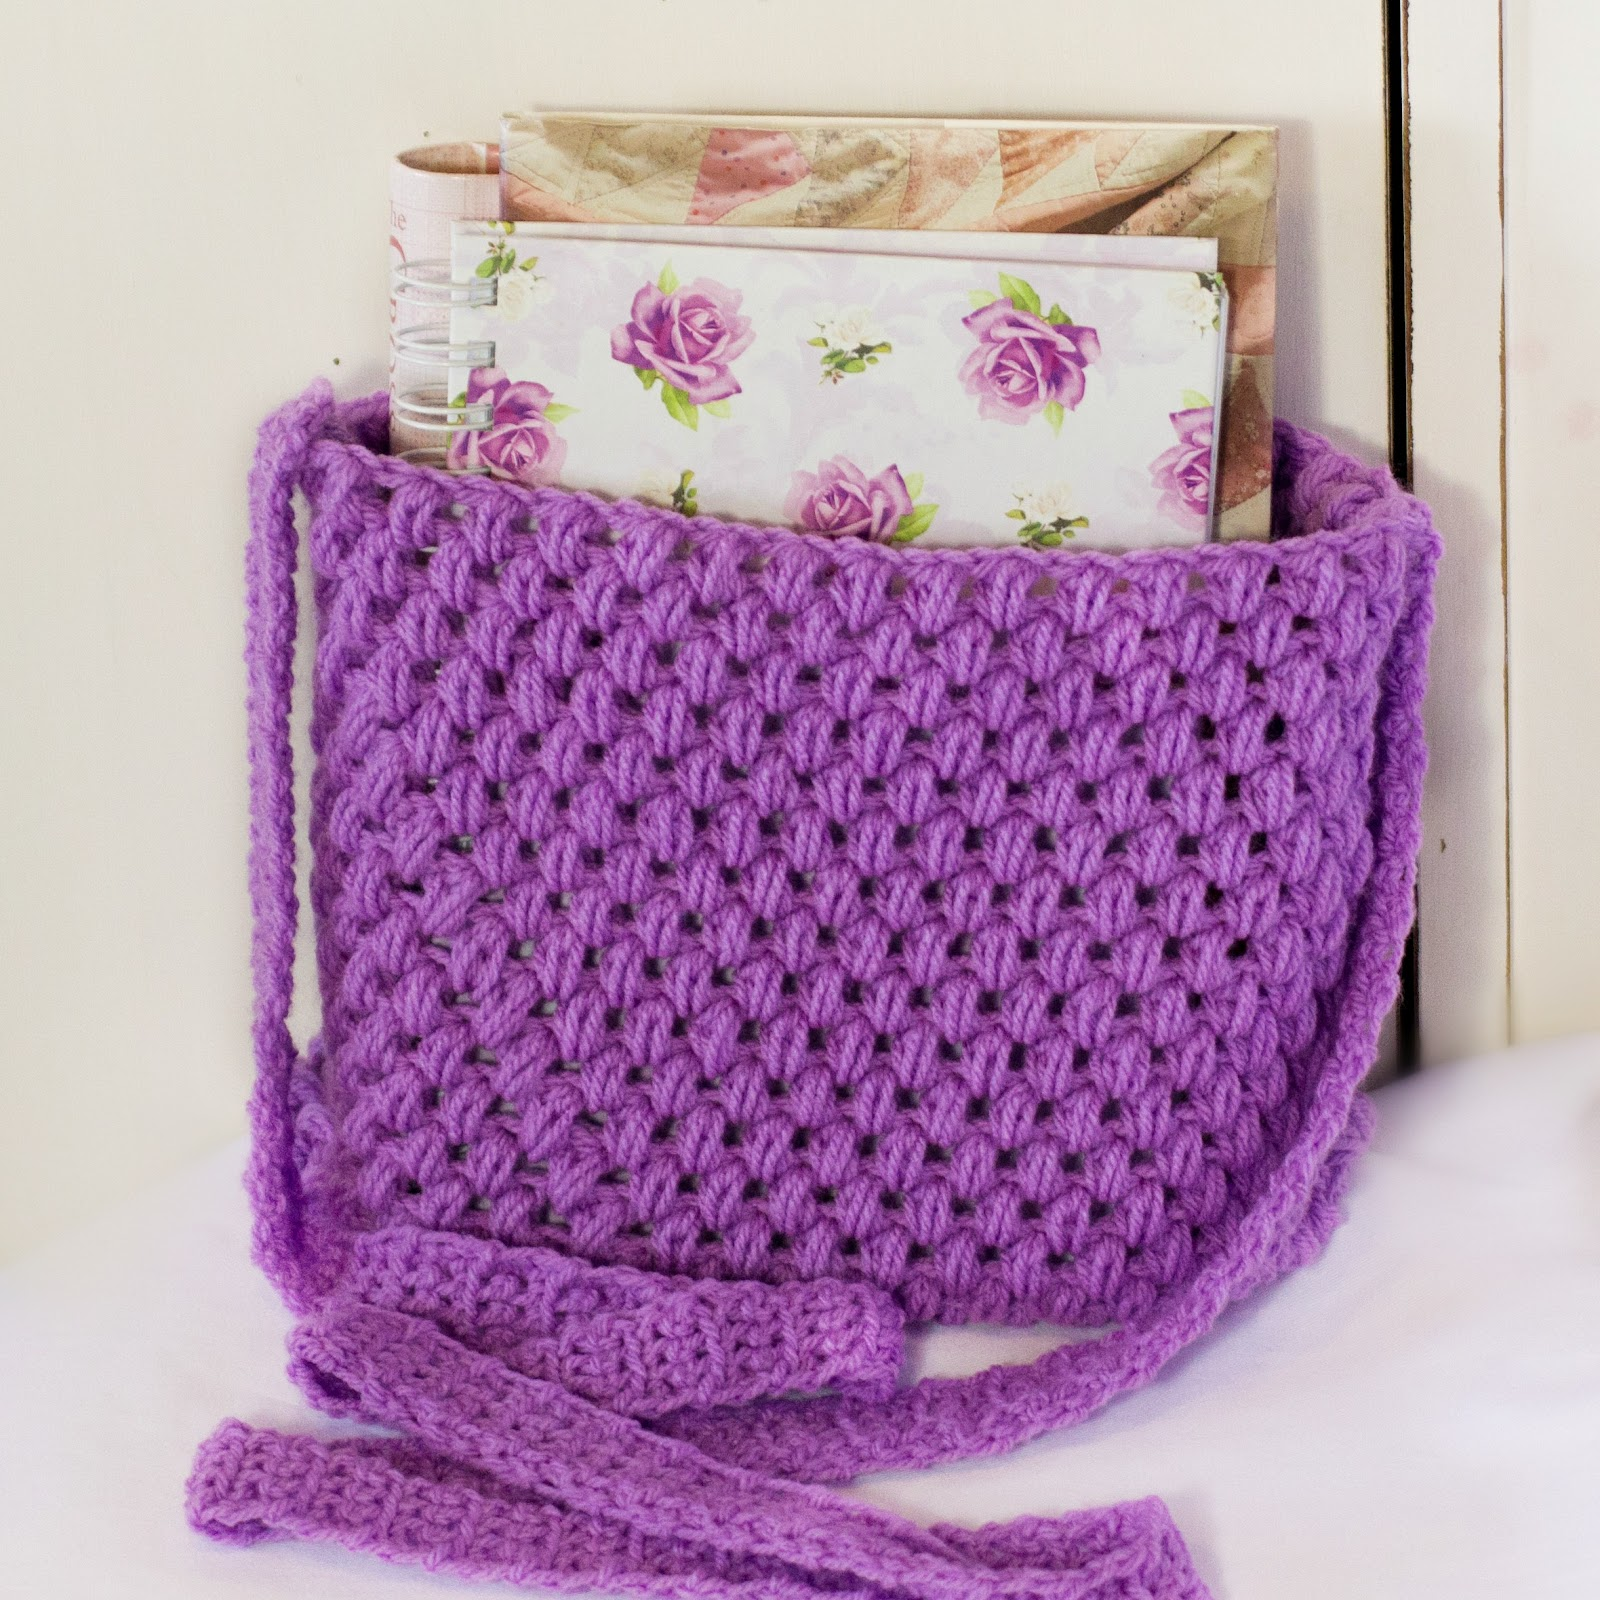 Crochet Purse Patterns Free Easy : ... Craft, Crochet, Create: Out and About ~ Easy Tote Bag Crochet Pattern